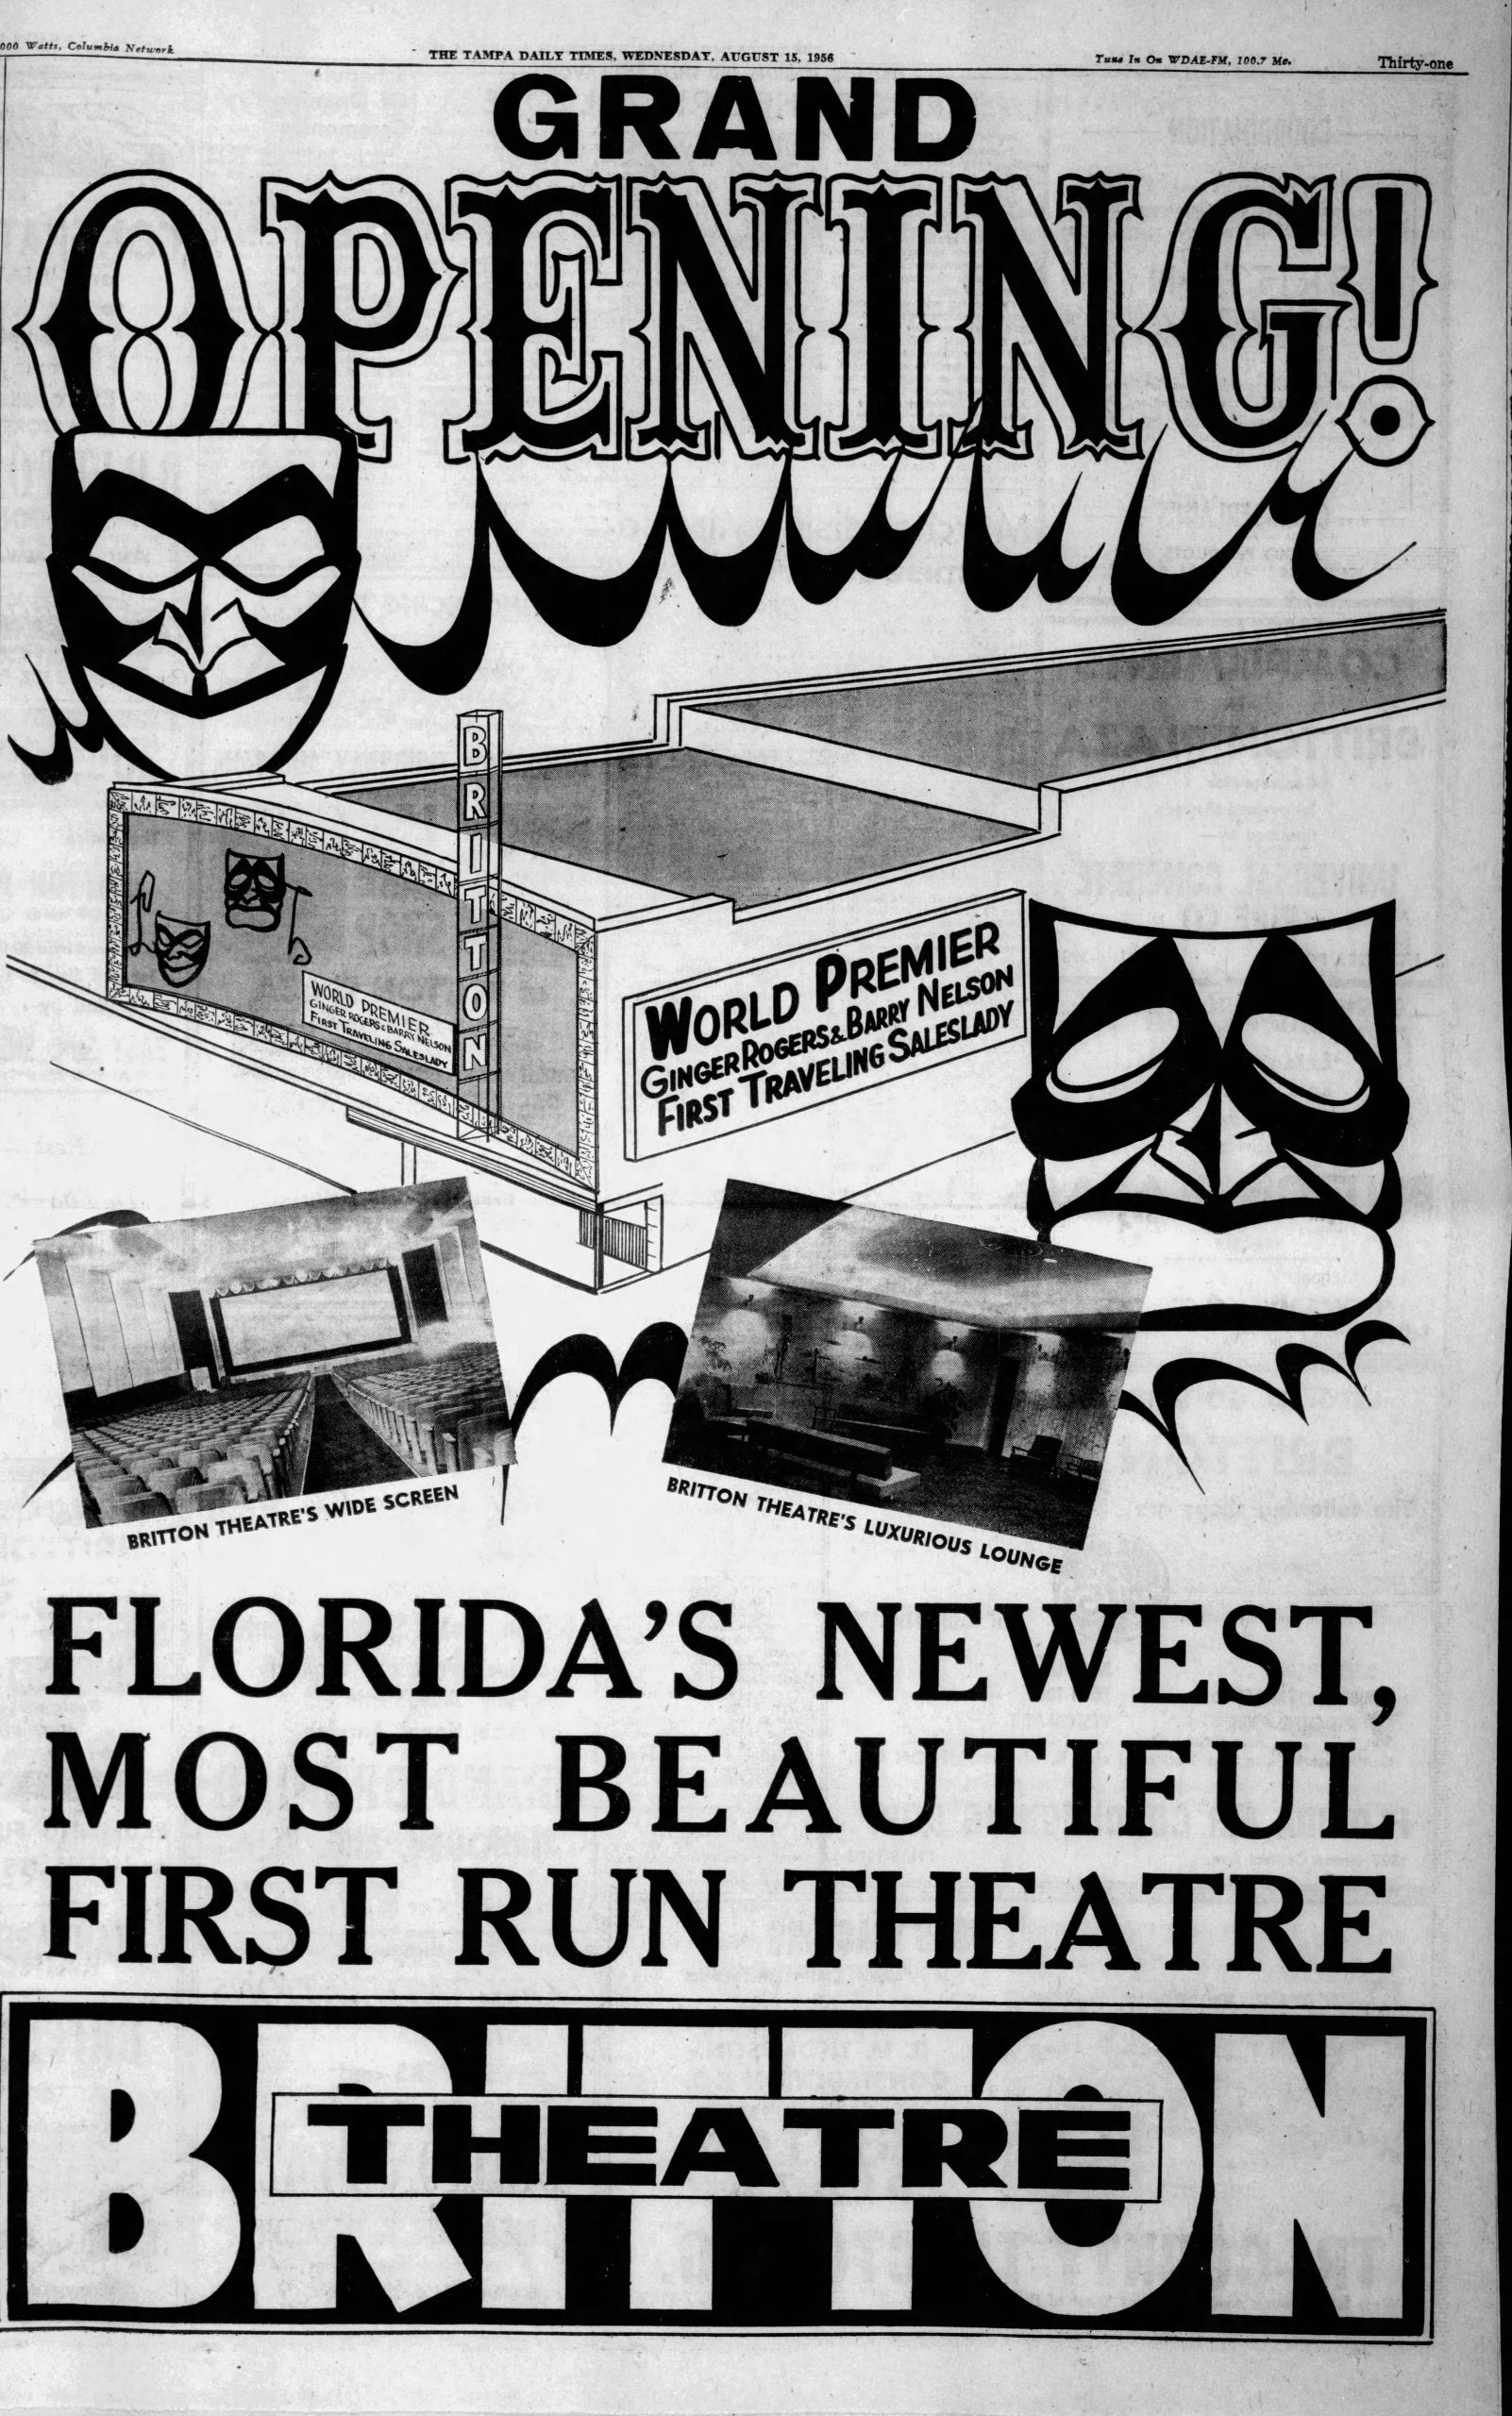 Tampa Times 1956 ad opening Britton Theater Tampa Florida